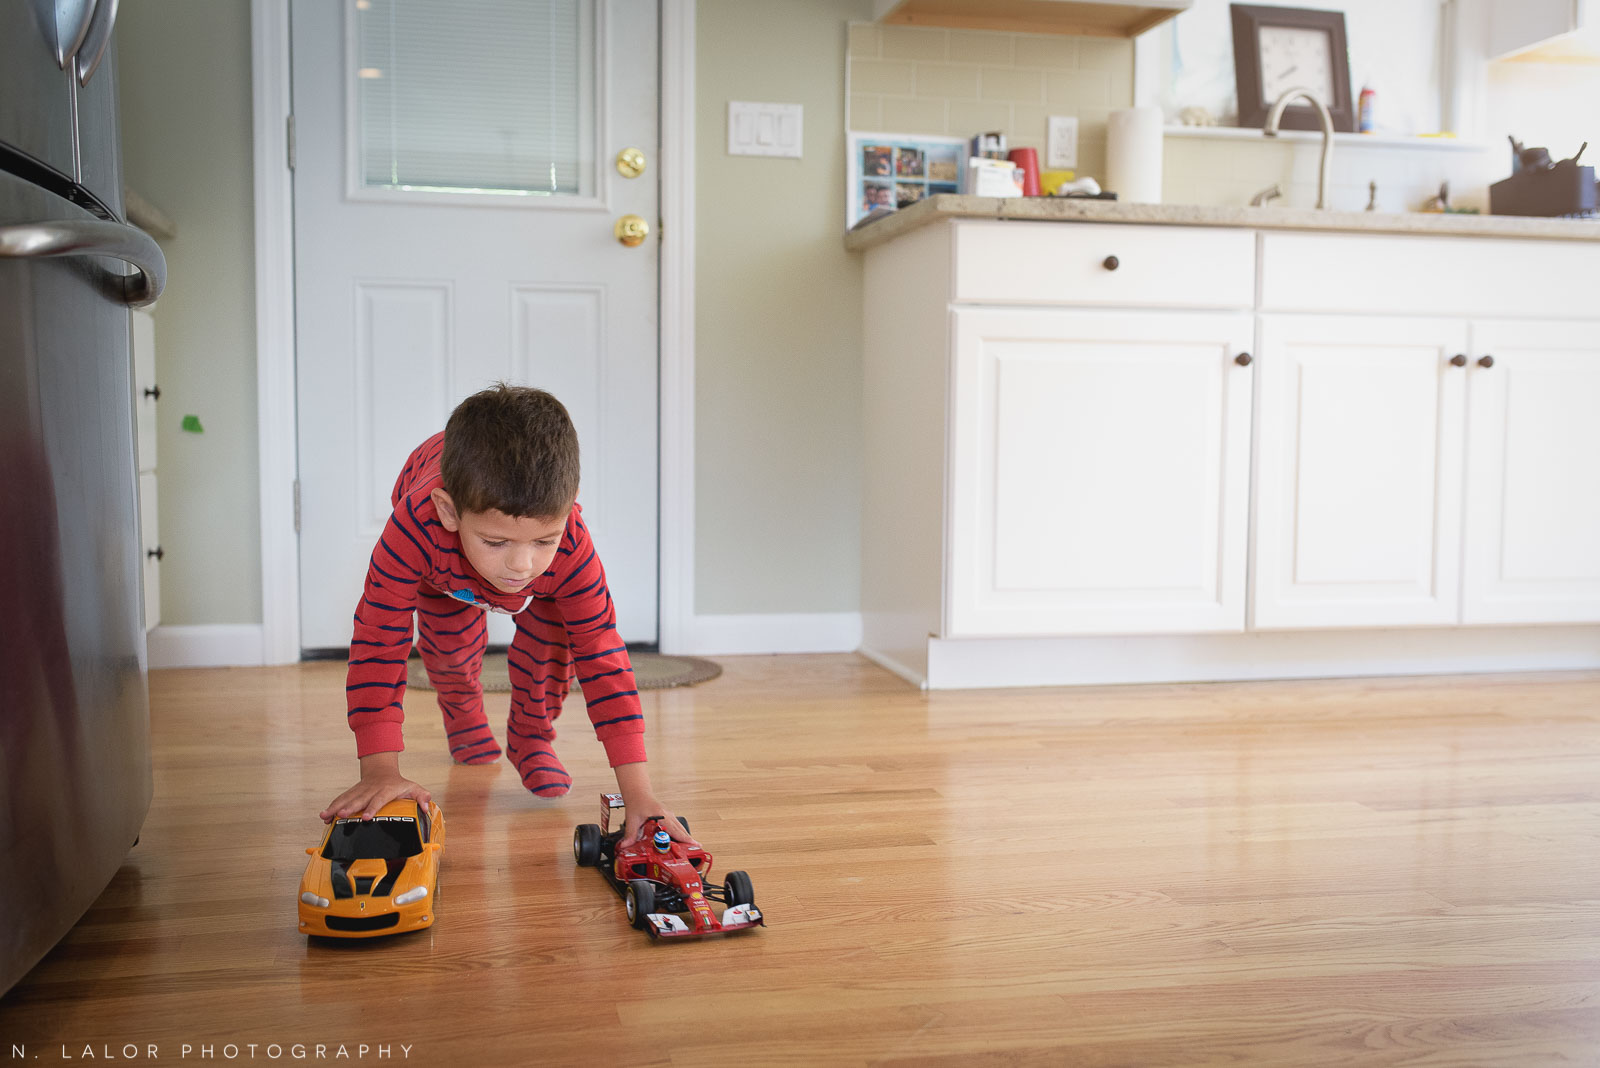 4-year old boy playing with cars on the kitchen floor. Documentary photo by N. Lalor Photography.